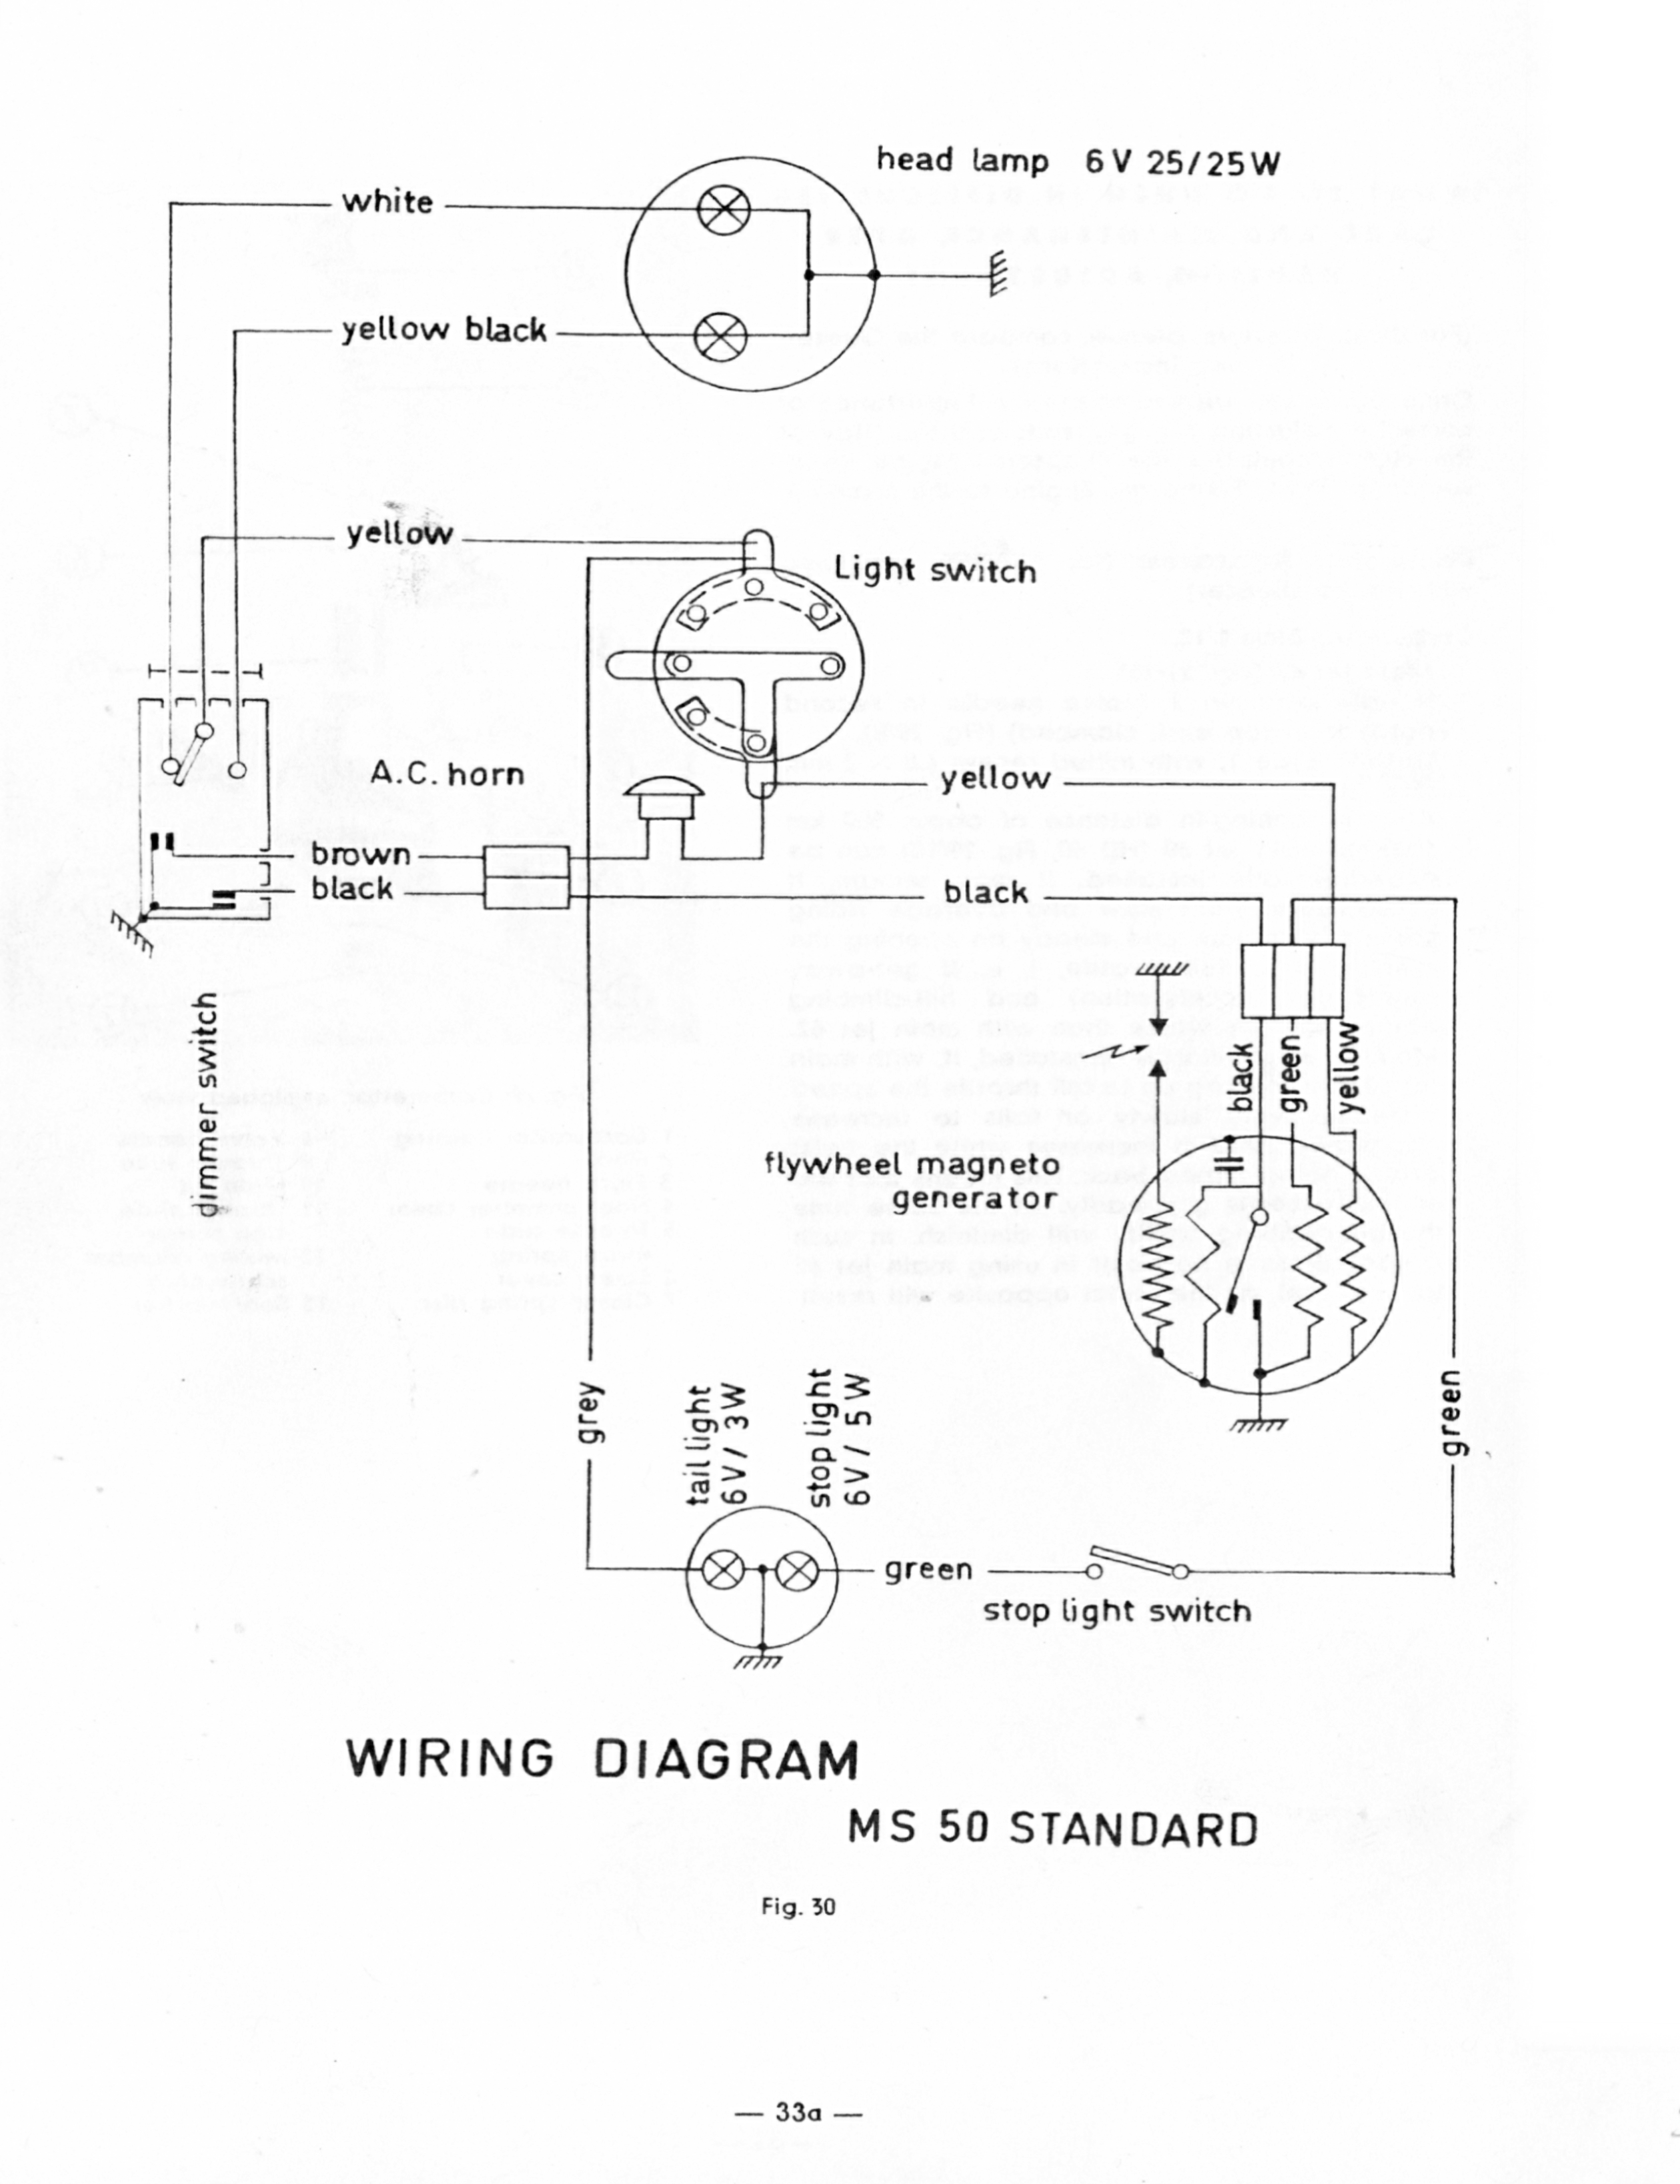 Puch MS50 wiring diagram.png